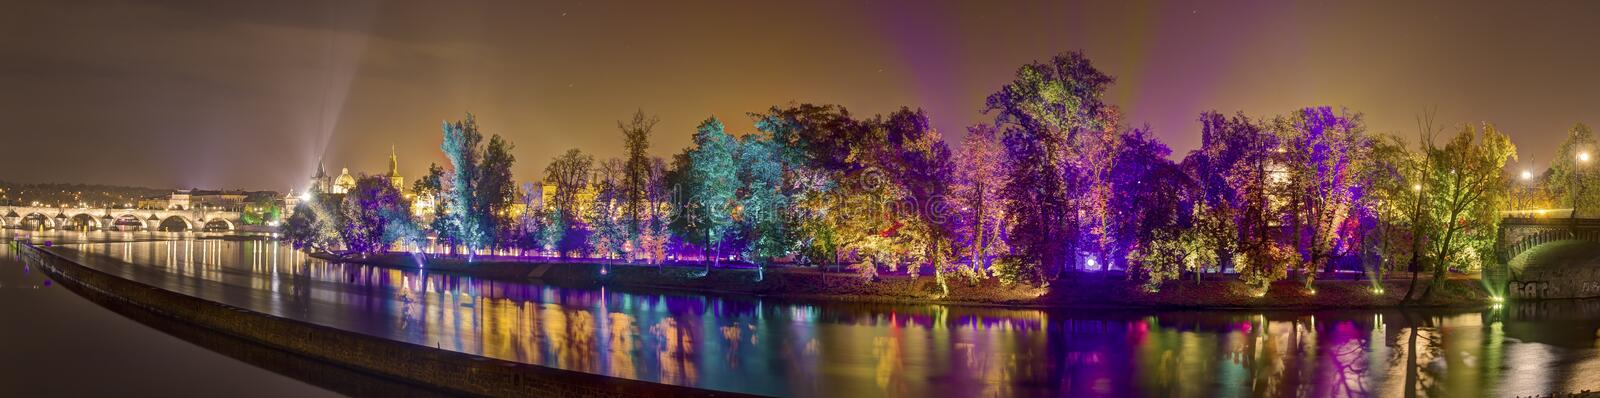 HDR panorama image of Magical garden installation by the Finnish master of moving light effects Kari Kola at Signal festival 2015 royalty free stock images